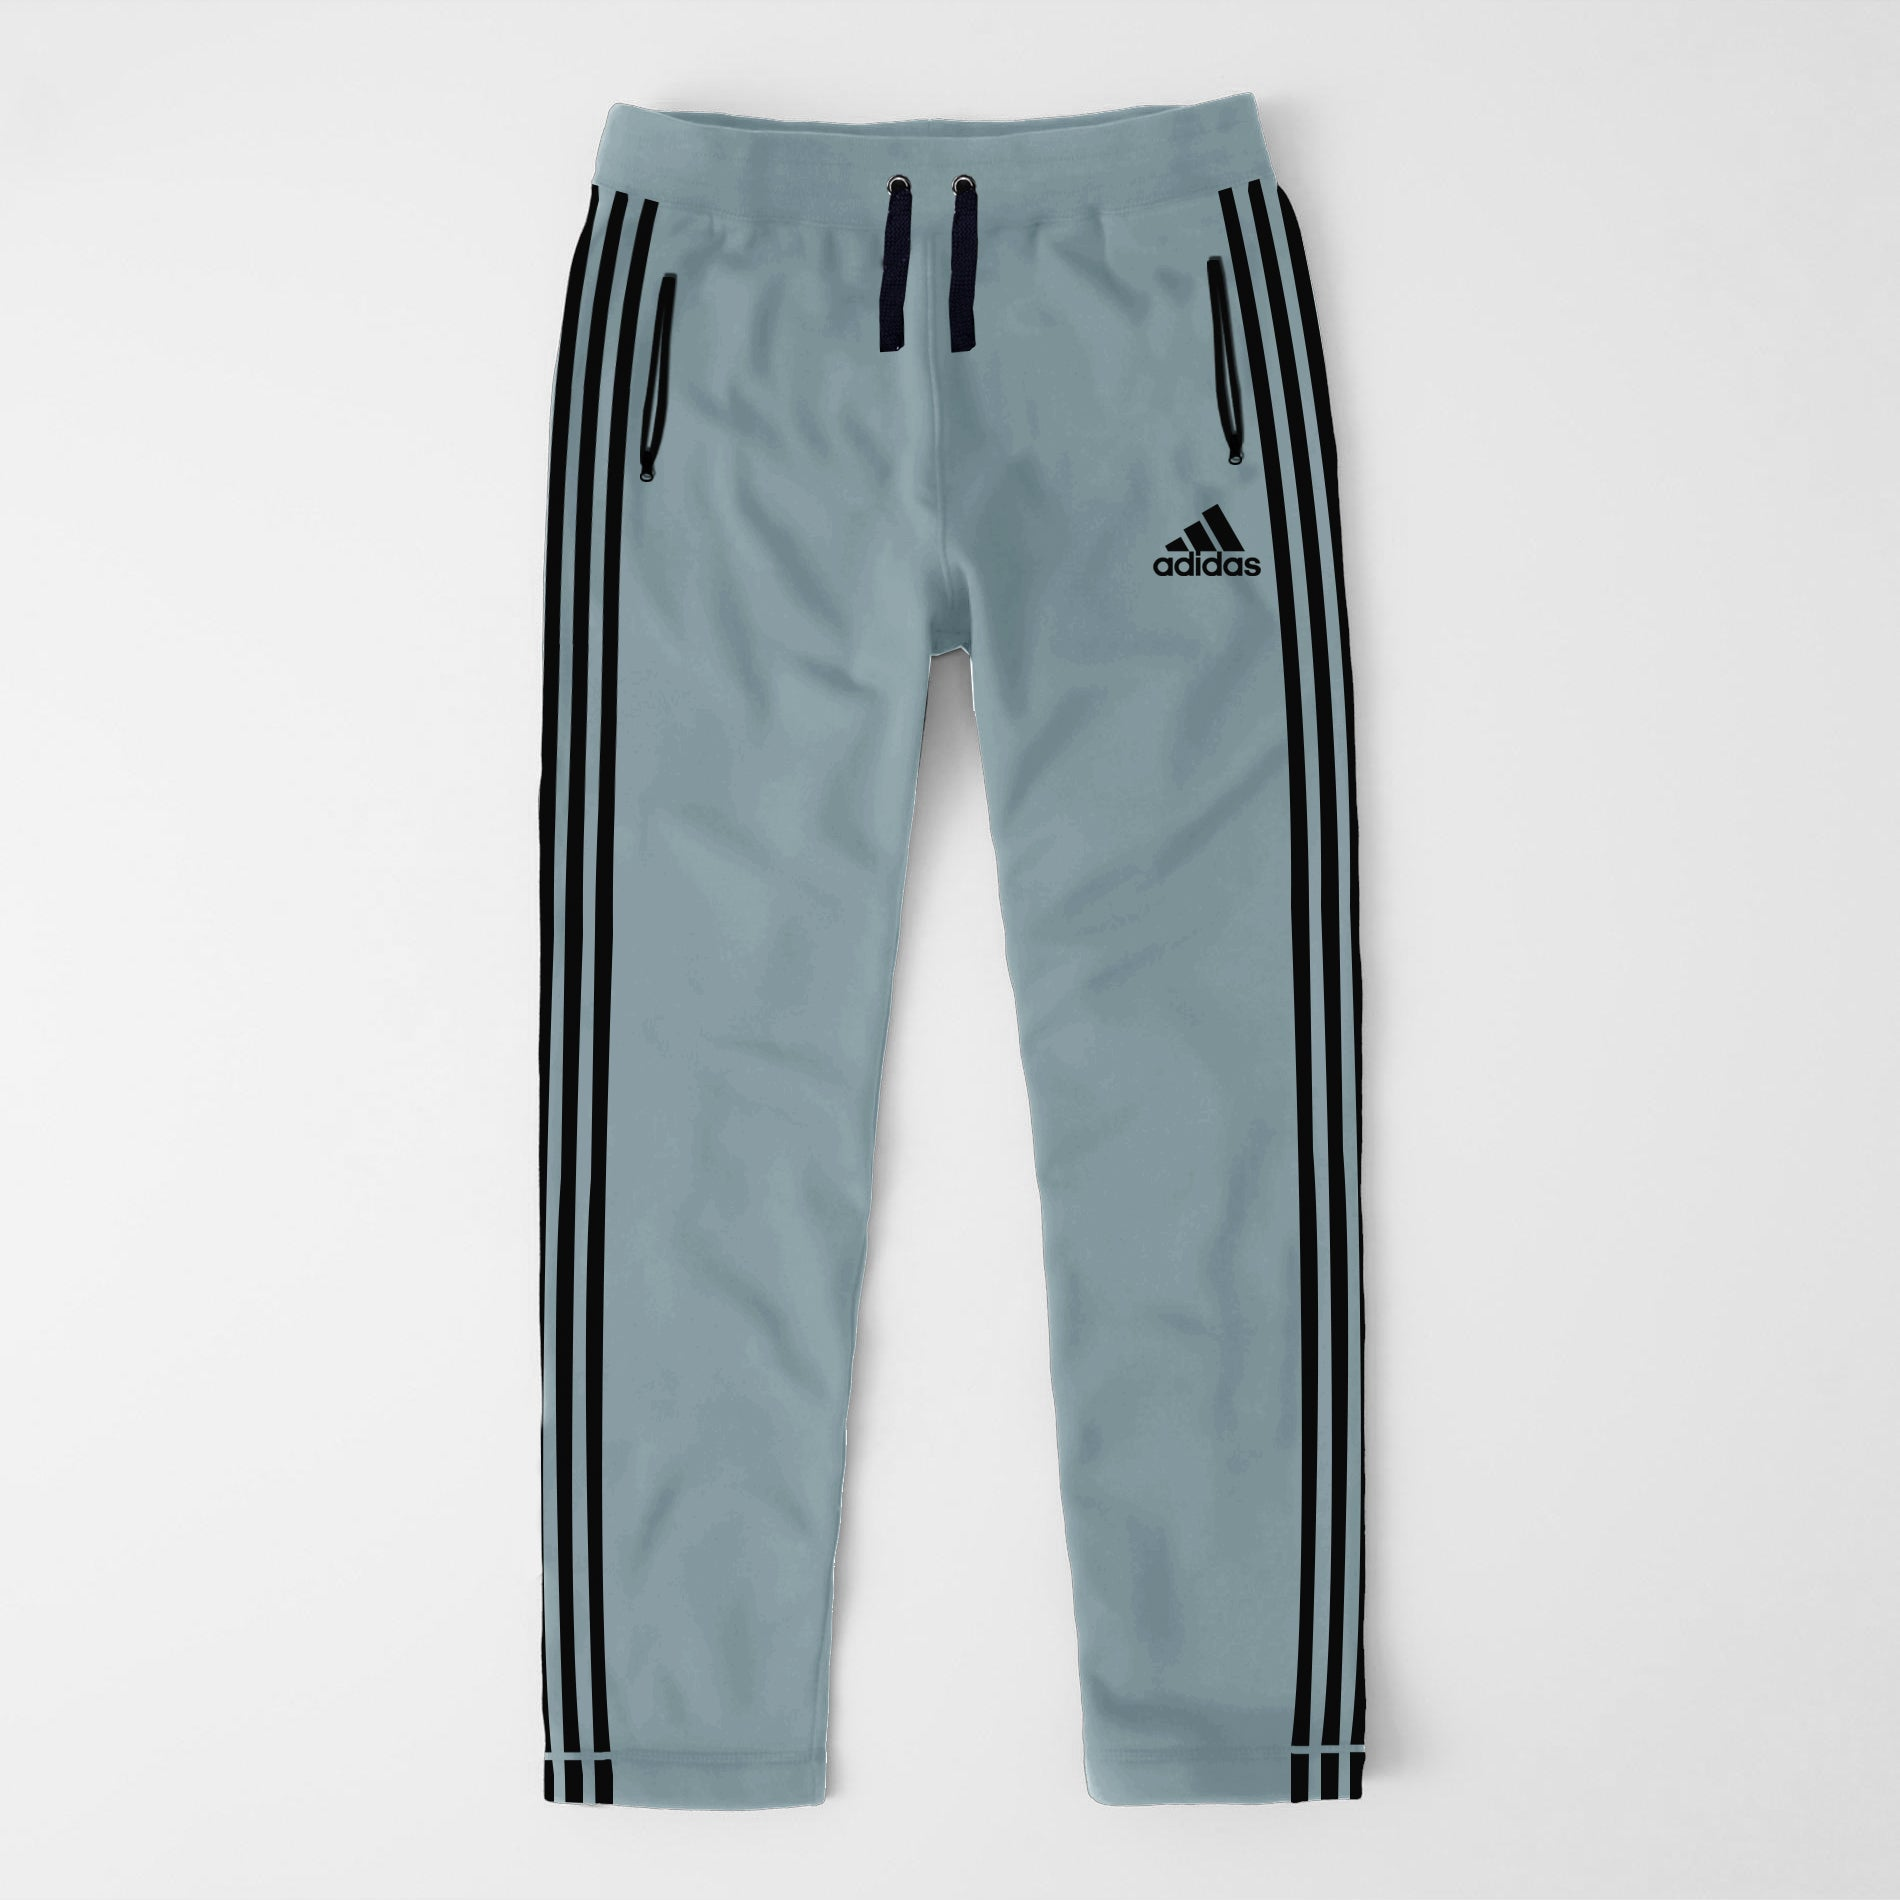 Adidas Single Jersey Regular Fit Trouser For Men-Slate Green With Black Stripes-SP377